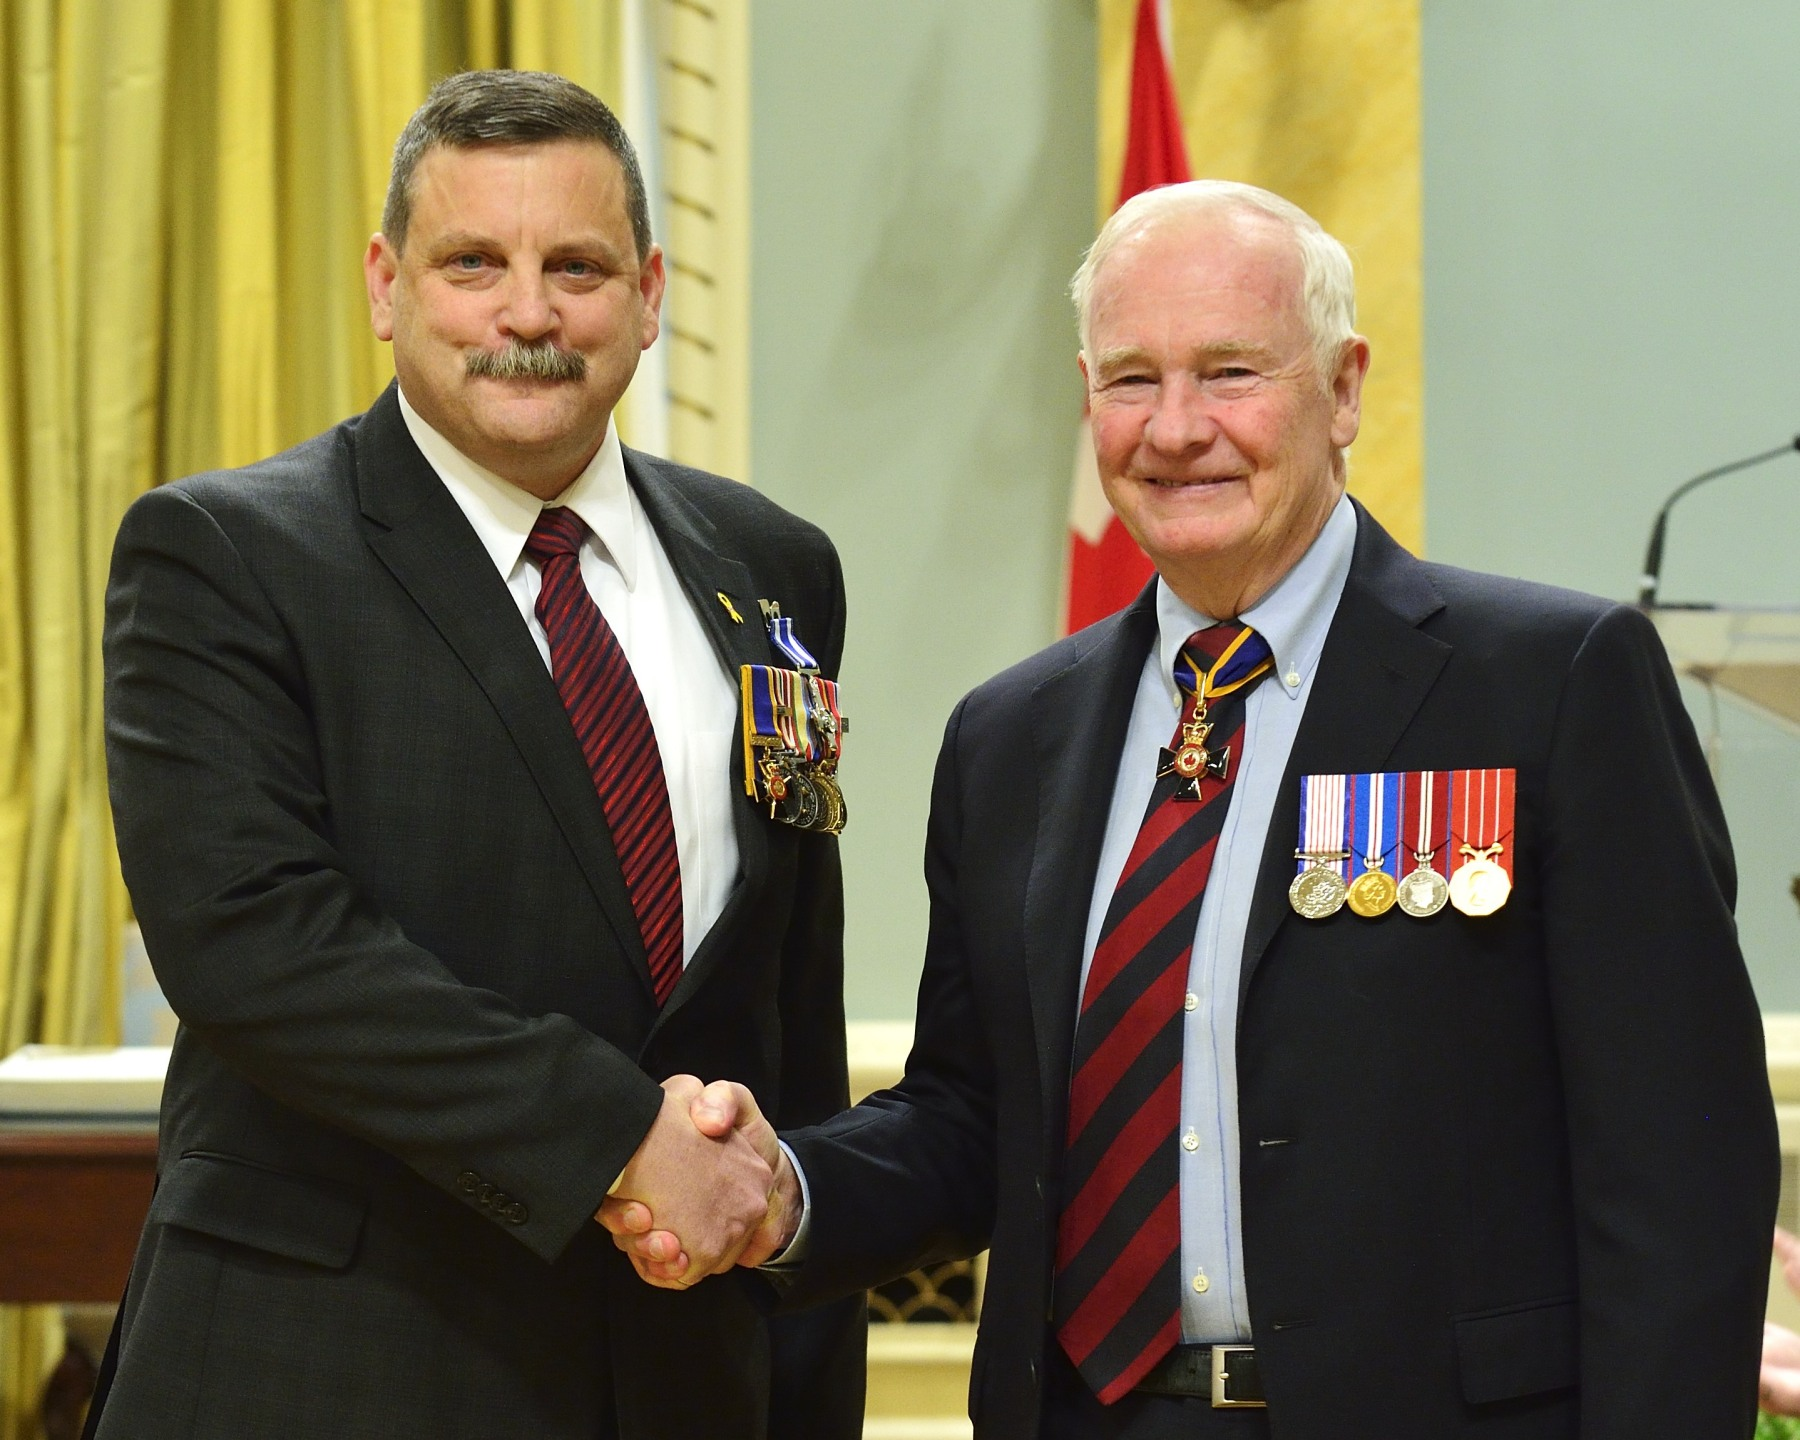 His Excellency presented 35 Meritorious Service Decorations (Military Division) to members of the Canadian Armed Forces and allied forces. Brigadier-General Kenneth André Corbould, O.M.M., M.S.C., C.D. (St. Albert, Alberta) received the Meritorious Service Cross. As deputy commander of Regional Command (South) Headquarters from October 2010 to October 2011, Brigadier-General Corbould demonstrated leadership, combat-tested experience and a result-focused approach that significantly contributed to the success of the international military campaign in southern Afghanistan.  Working within a diverse battle space and across multiple lines of operations, he created a clear and direct path for his organization to move forward. Brigadier-General Corbould's efforts were critical to multinational success in Afghanistan, highlighting Canada's role in bringing stability to the country.